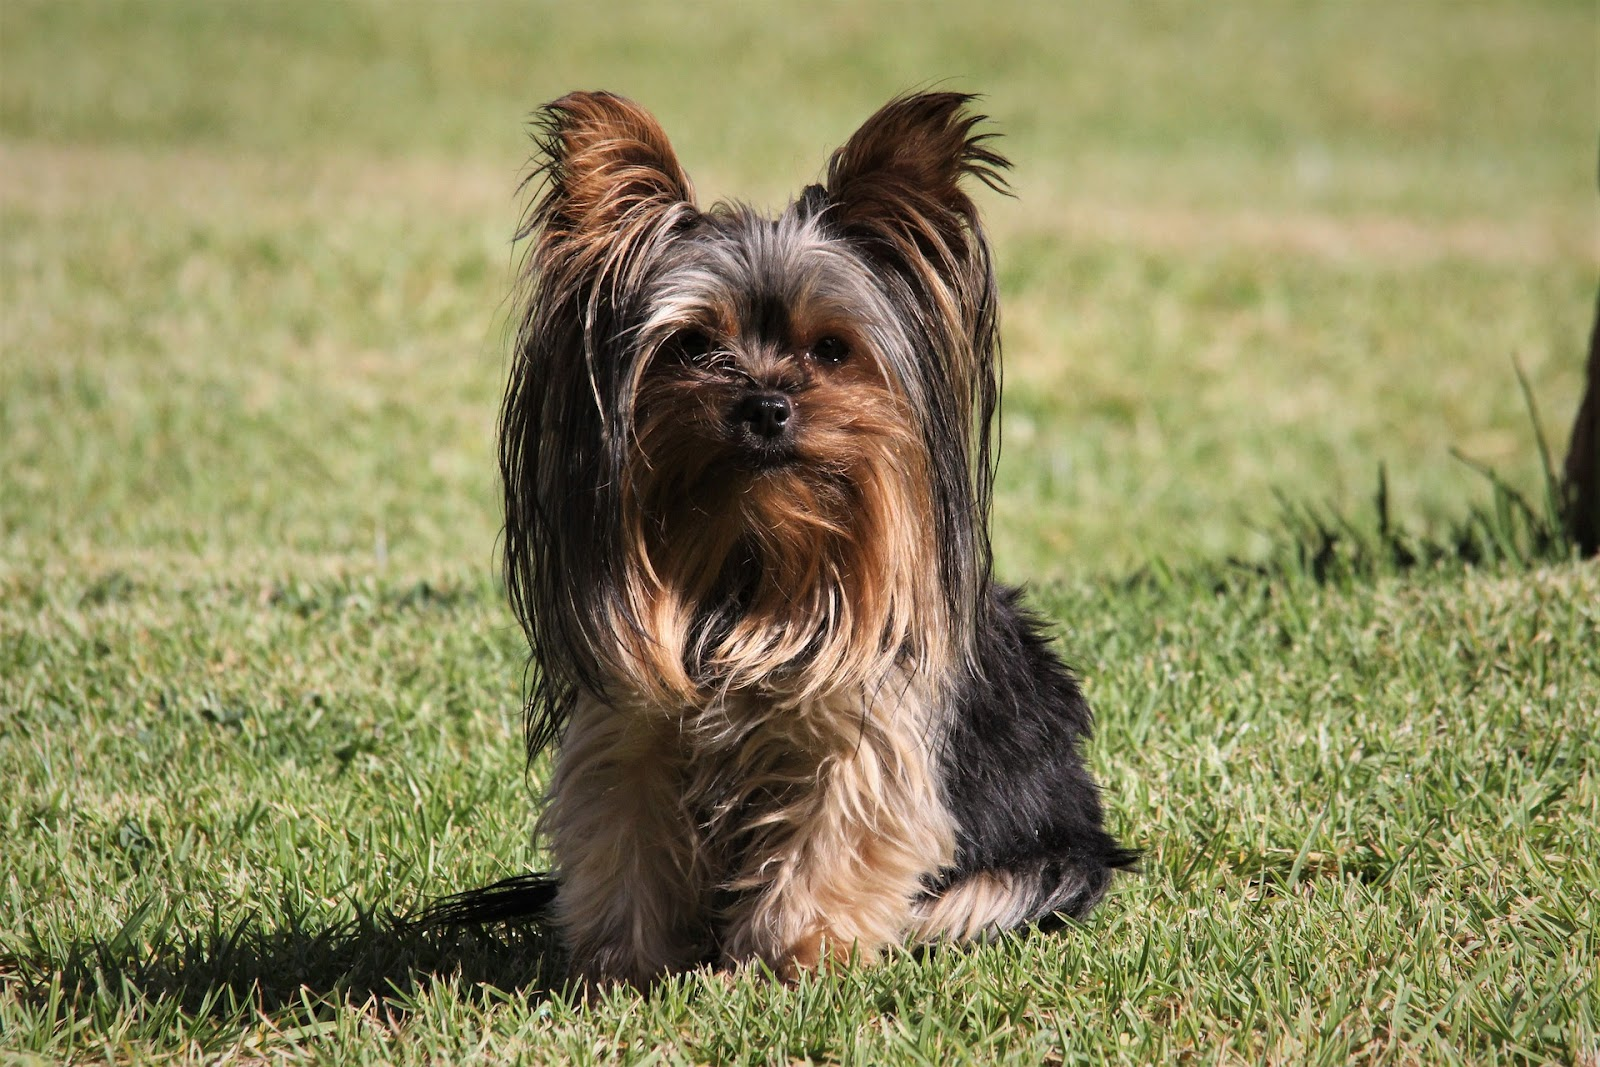 What Is the Best Haircut for a Yorkie?